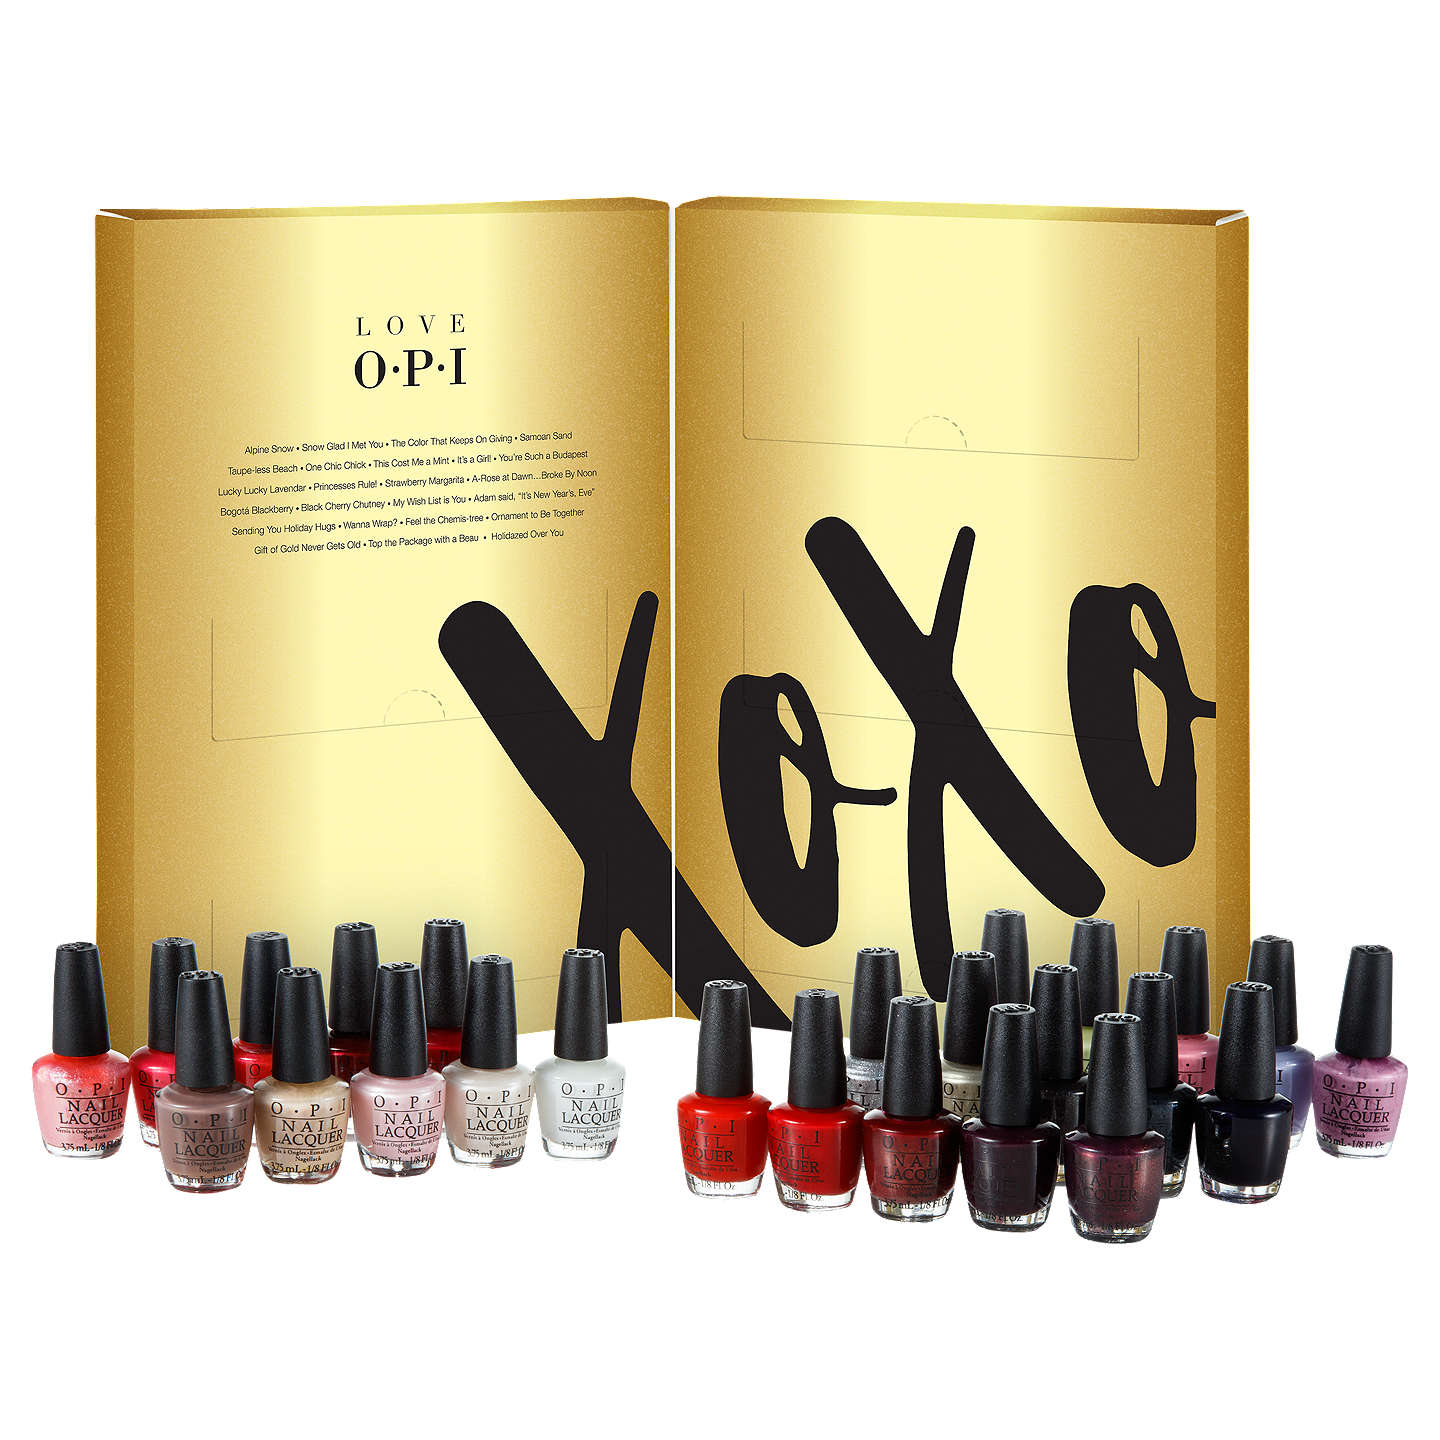 BuyOPI LOVE OPI XOXO Mini Nail Lacquer 25 Pack Gift Set Online at johnlewis.com